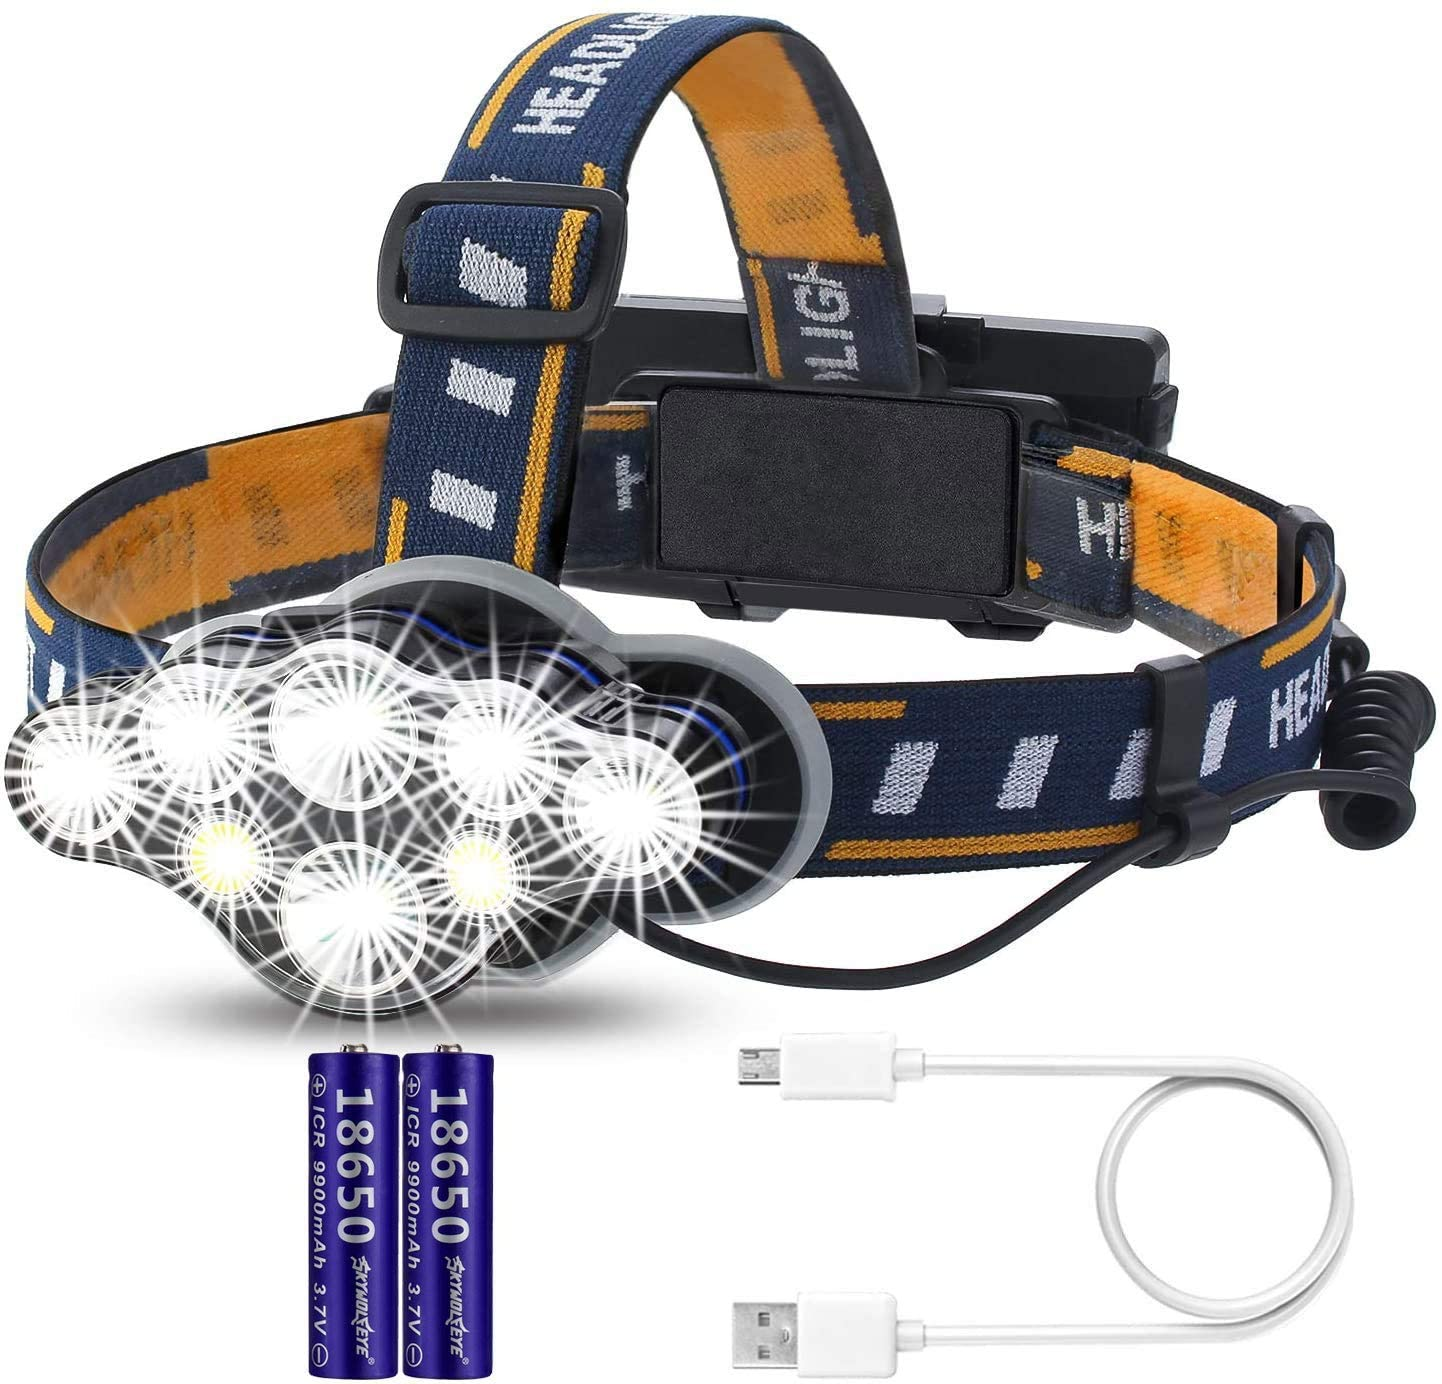 USB Rechargeable Headlamp, 8 LED Waterproof Headlights, 8 Modes of Headlights, with 2 PCS 9900 mAh Rechargeable batteries,Suitable For Outdoor Camping, Cycling, Running, Fishing